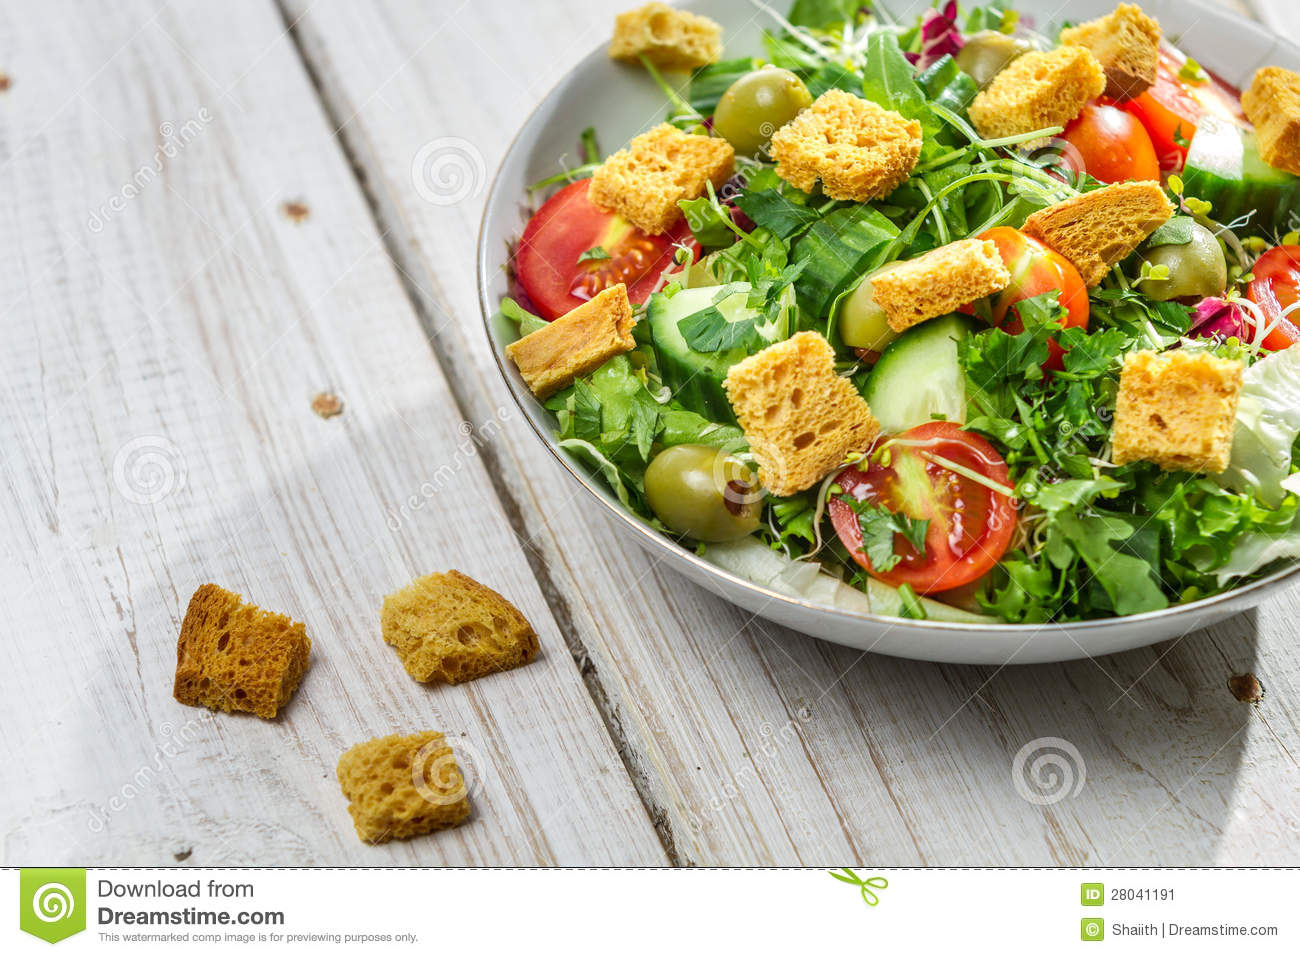 Close-up on a fresh salad with chicken